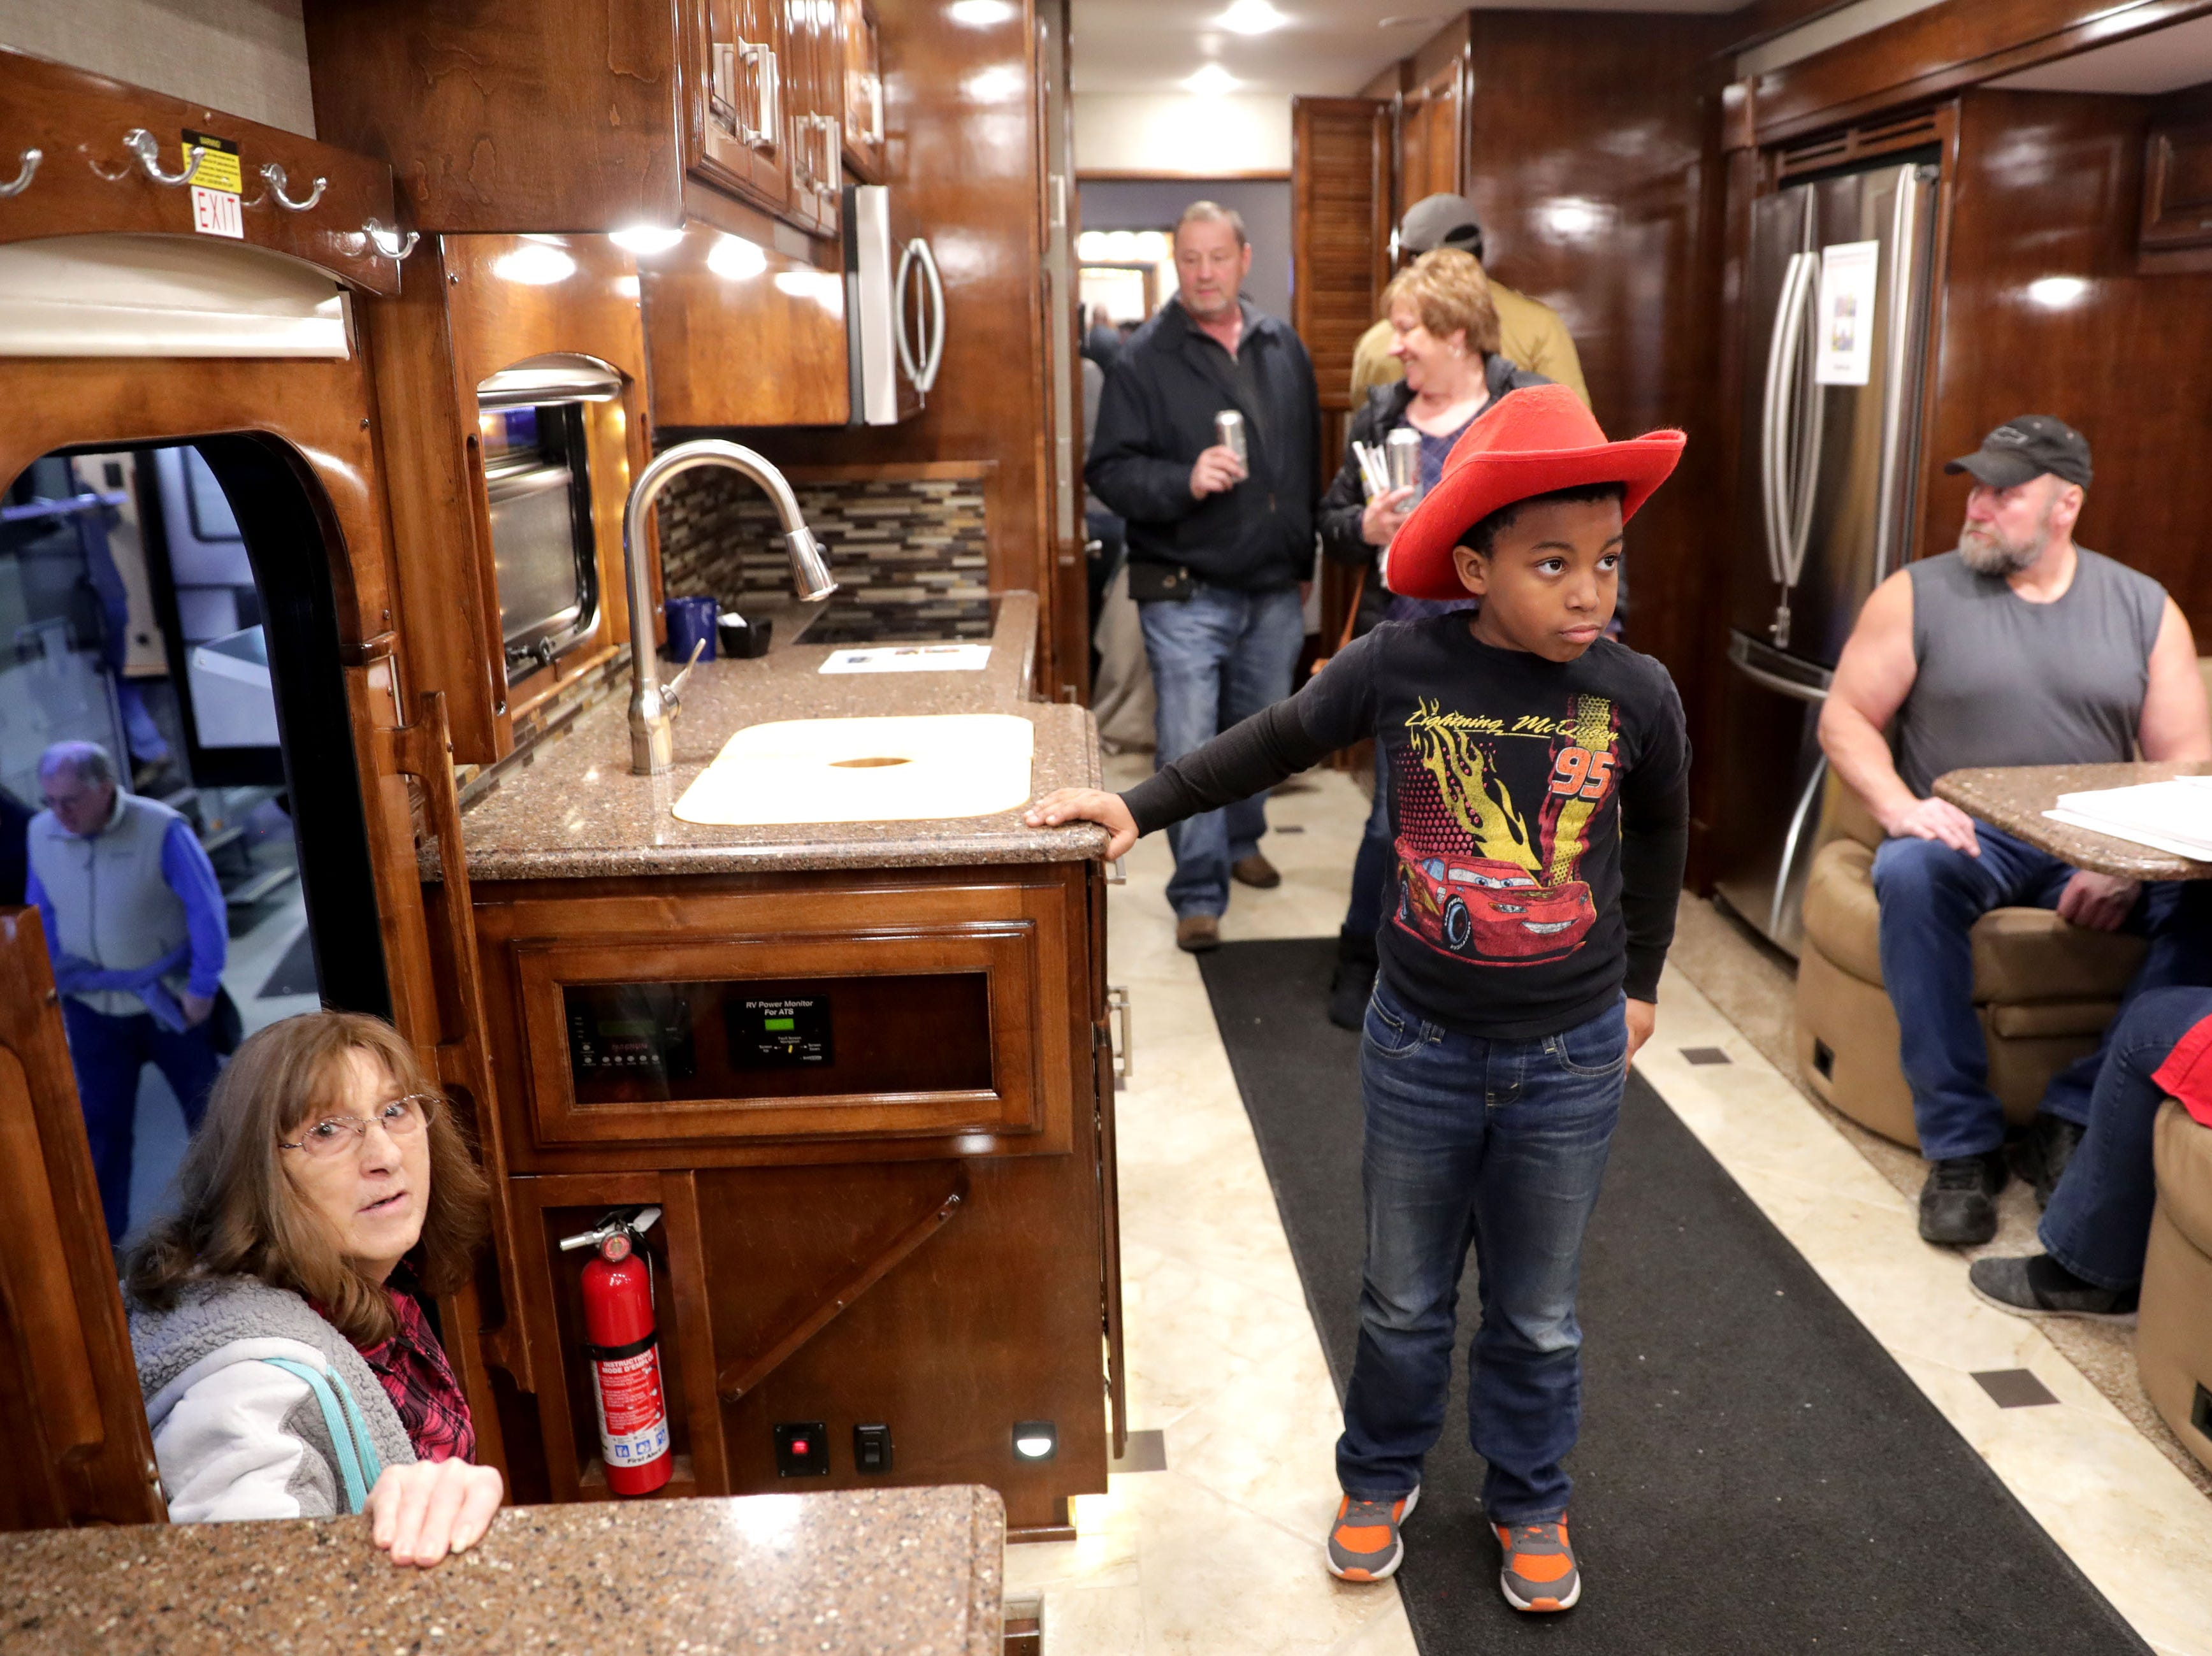 Gabriel Prince, 9, of Milwaukee walks through the 2019 Renegade 45HB Motor Coach. He was with his father, Ted Prince.